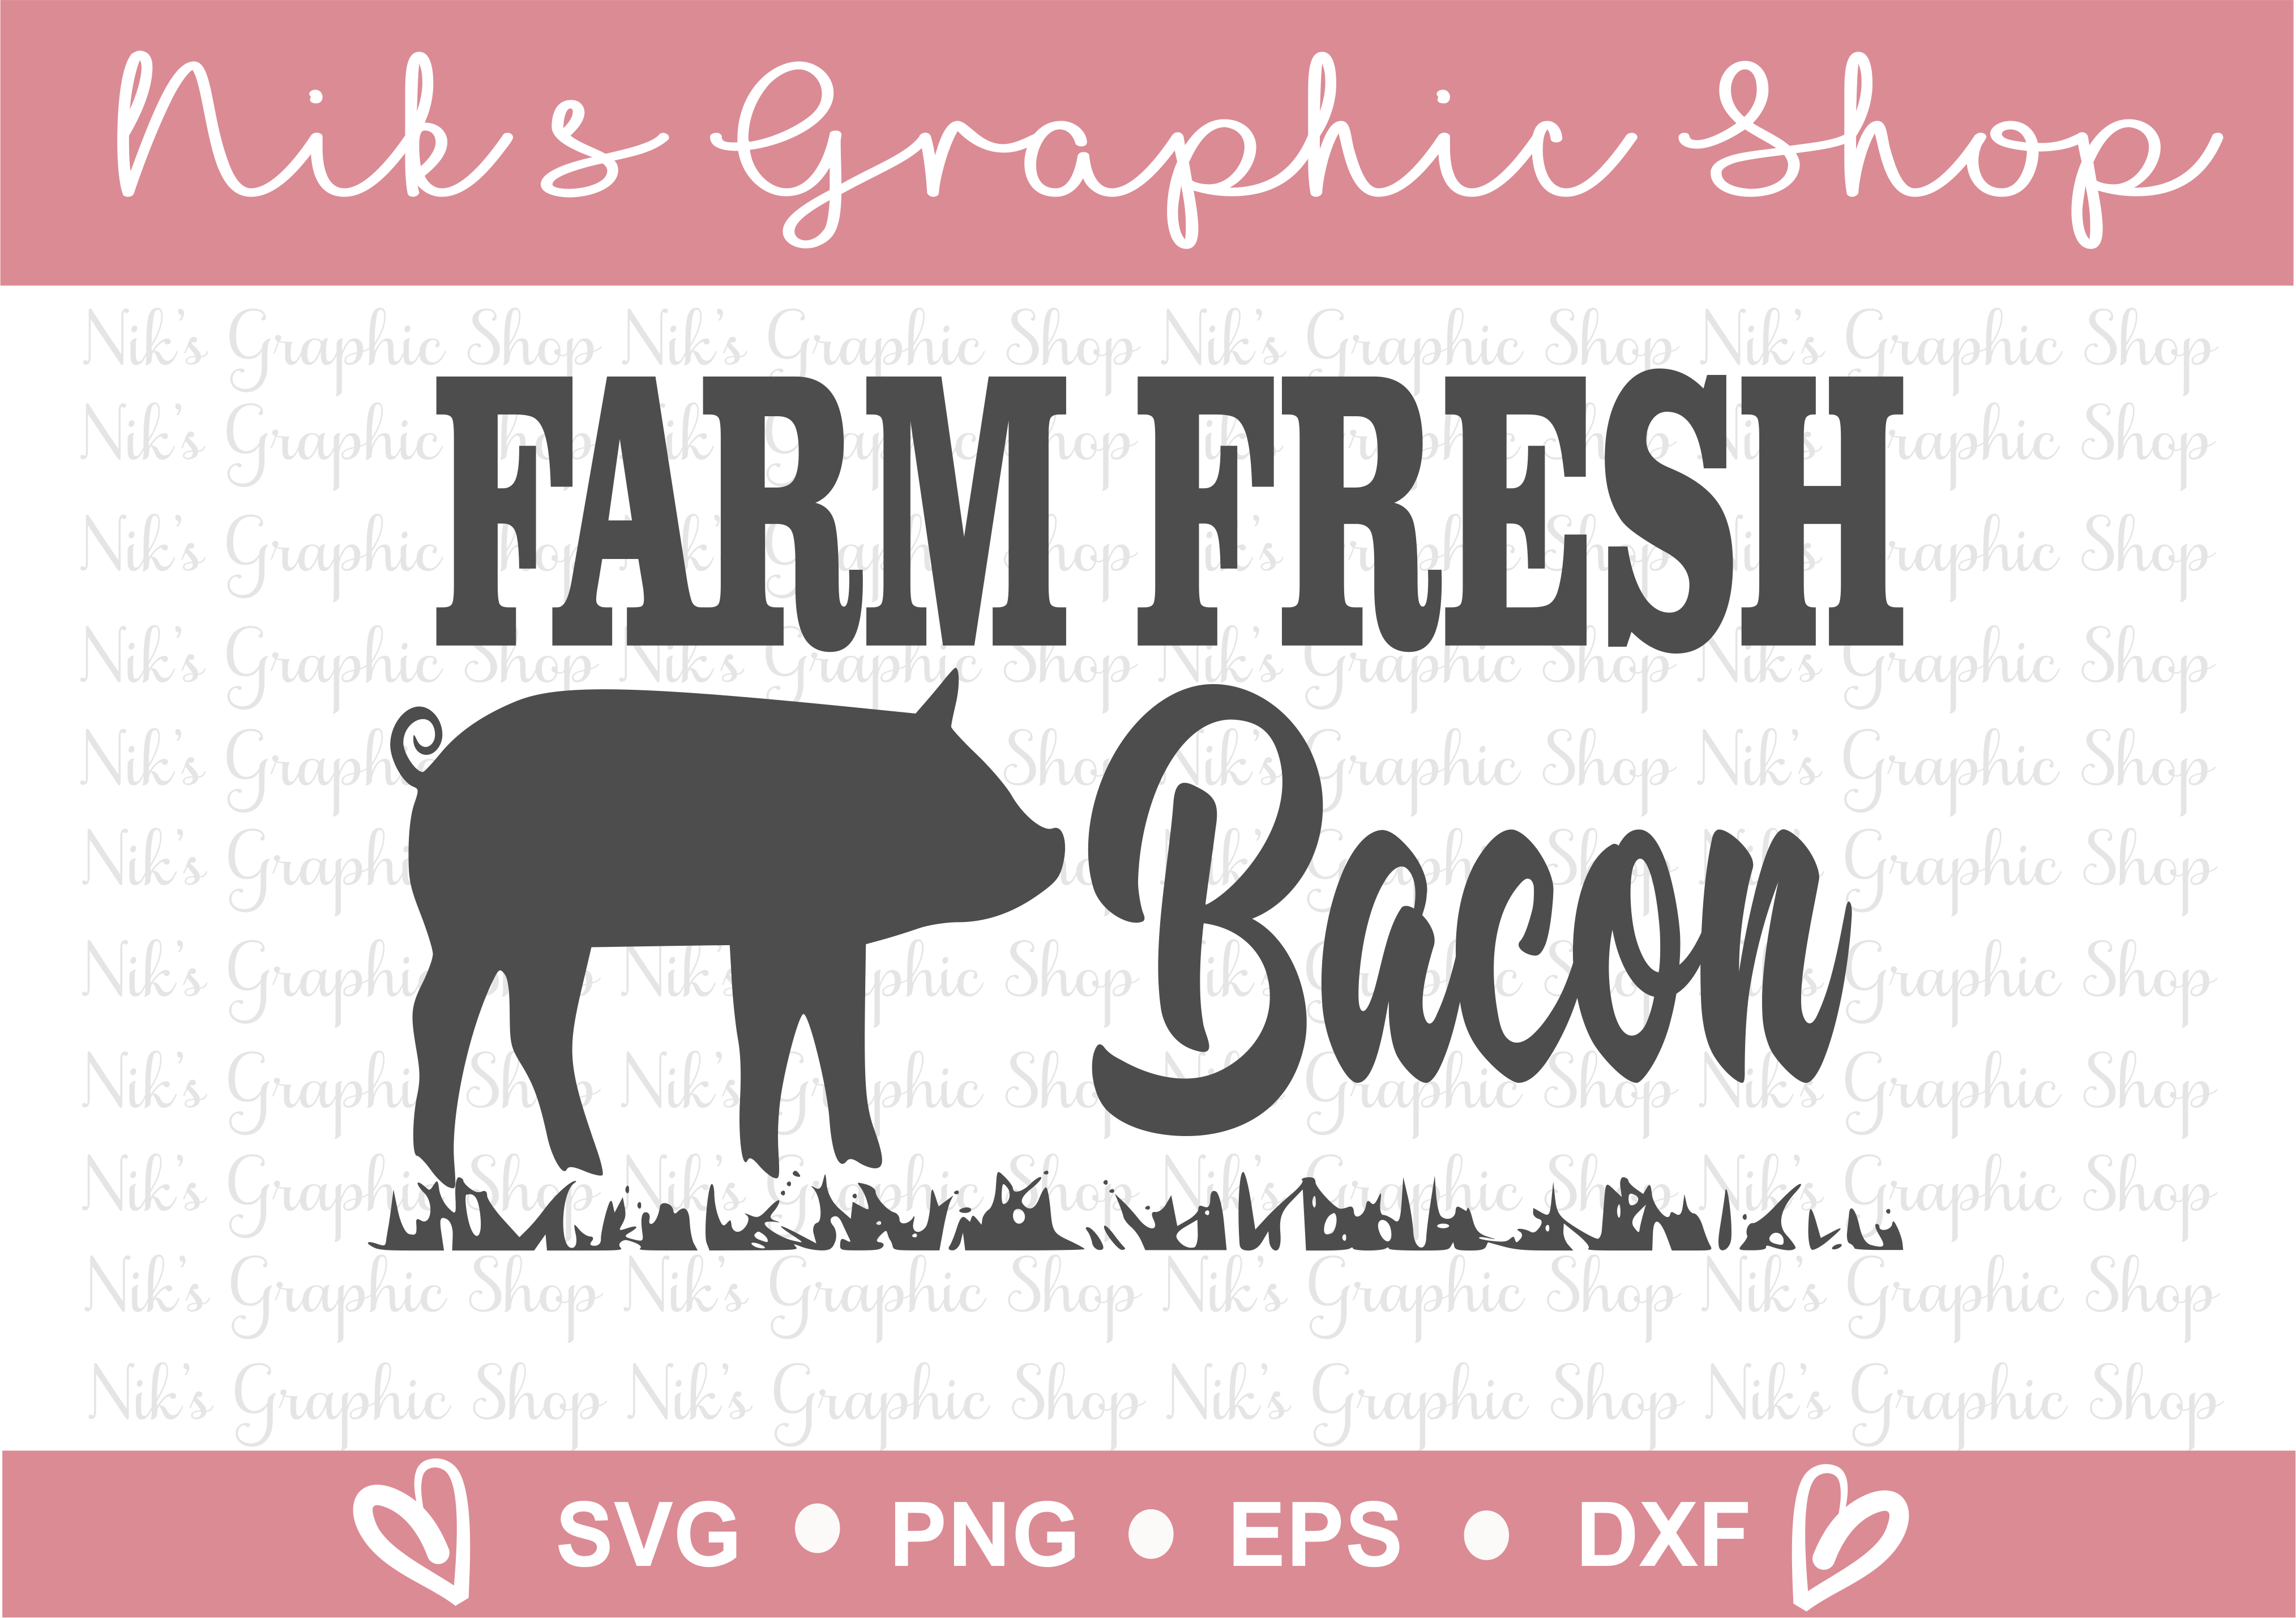 Farm Svgs, Farmers Svgs, Farmers Daughter Svg, Farm sweet example image 5